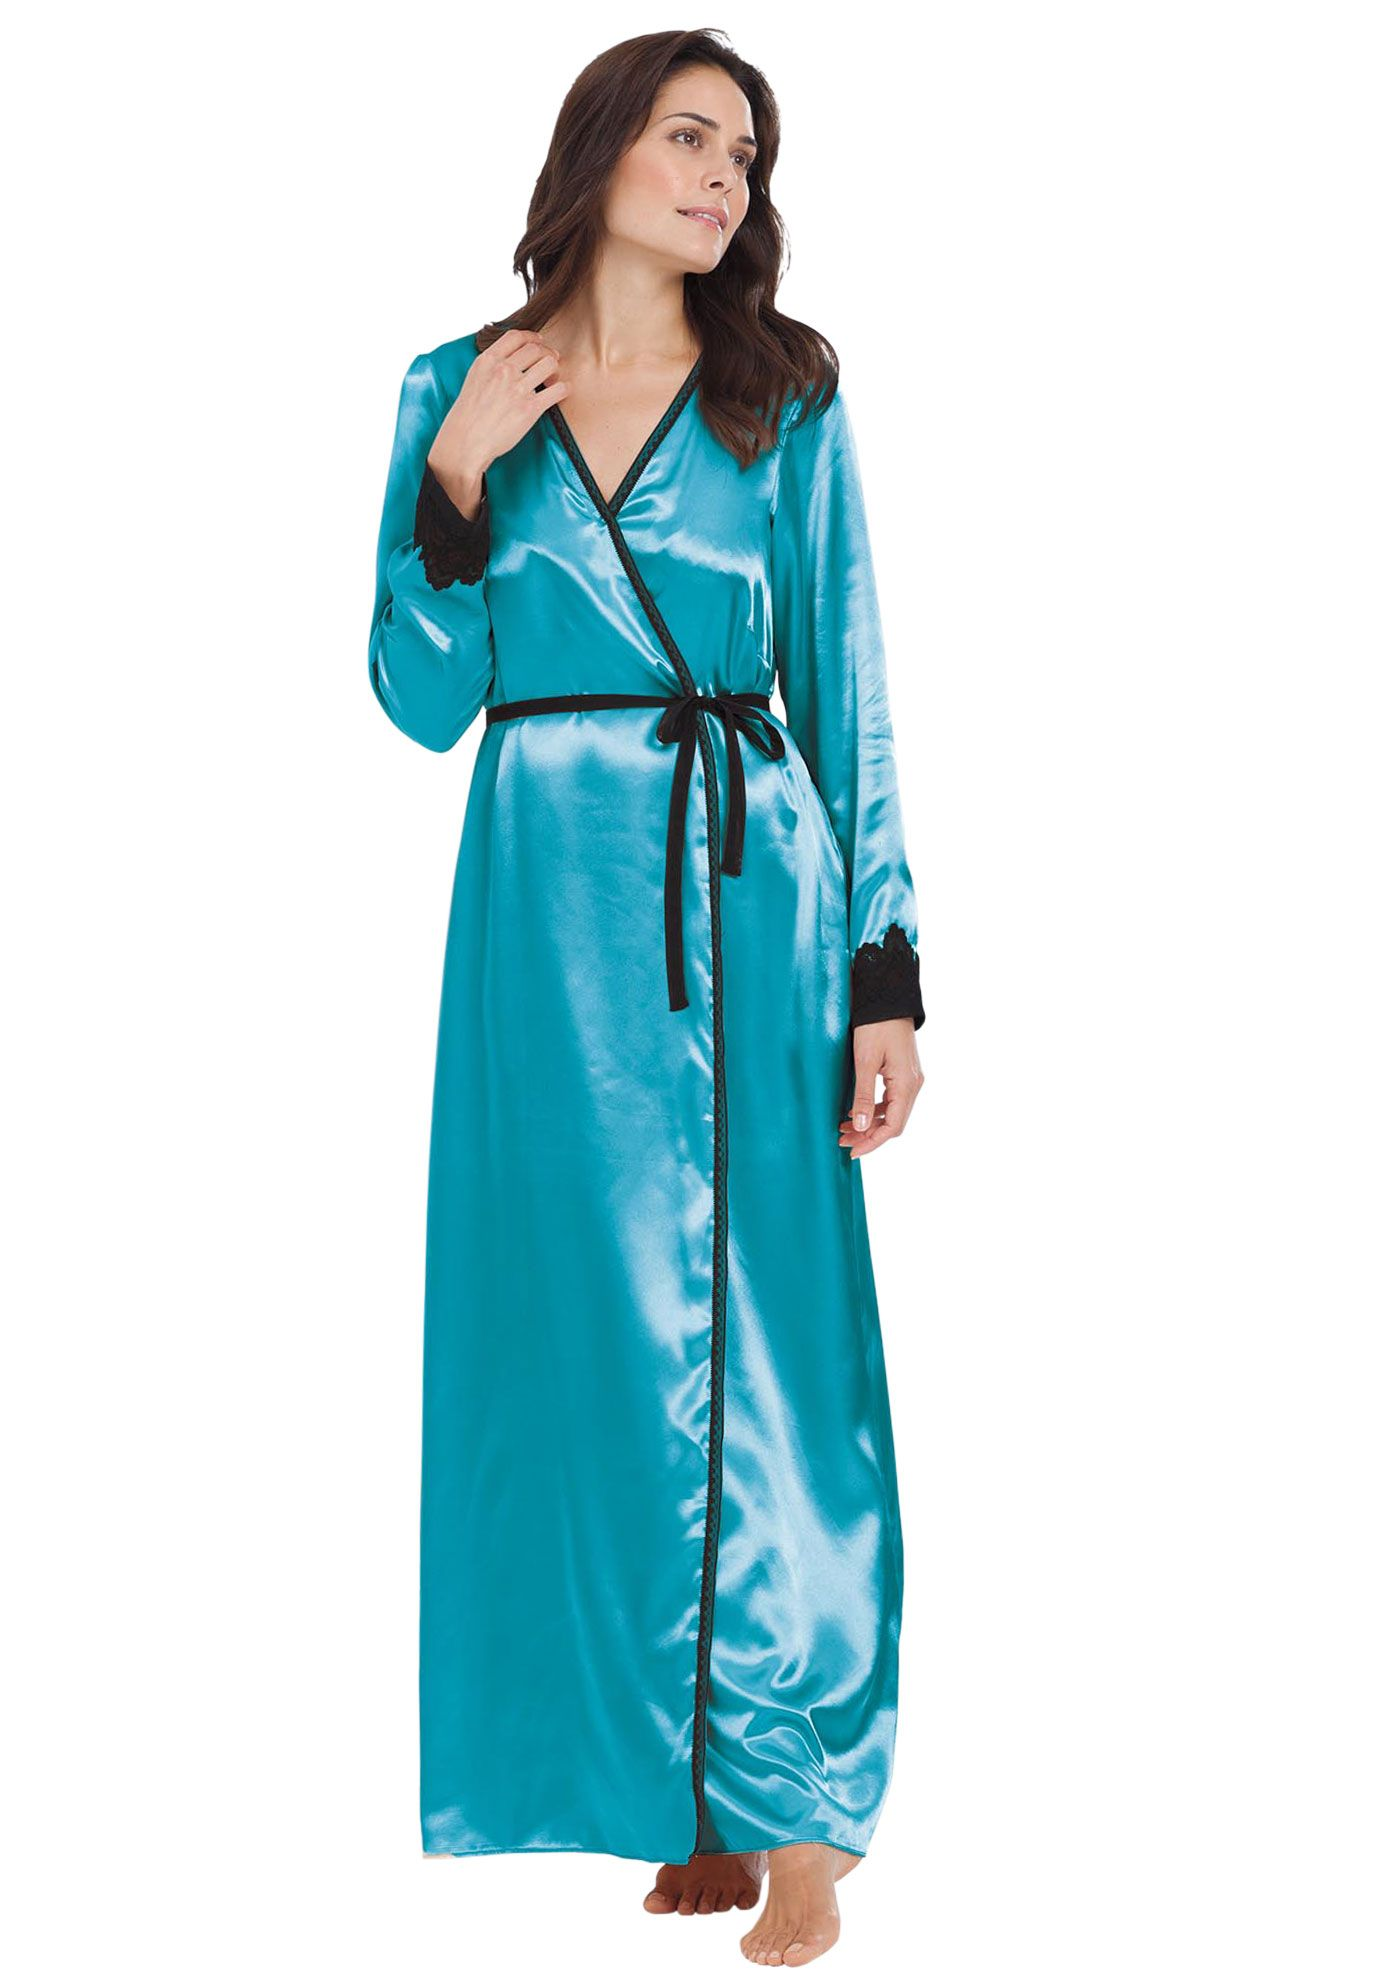 Plus Size Robe For Lounging In Satin By Amoureuse Plus Size New Sleepwear Woman Within Ropa Ropa De Dormir